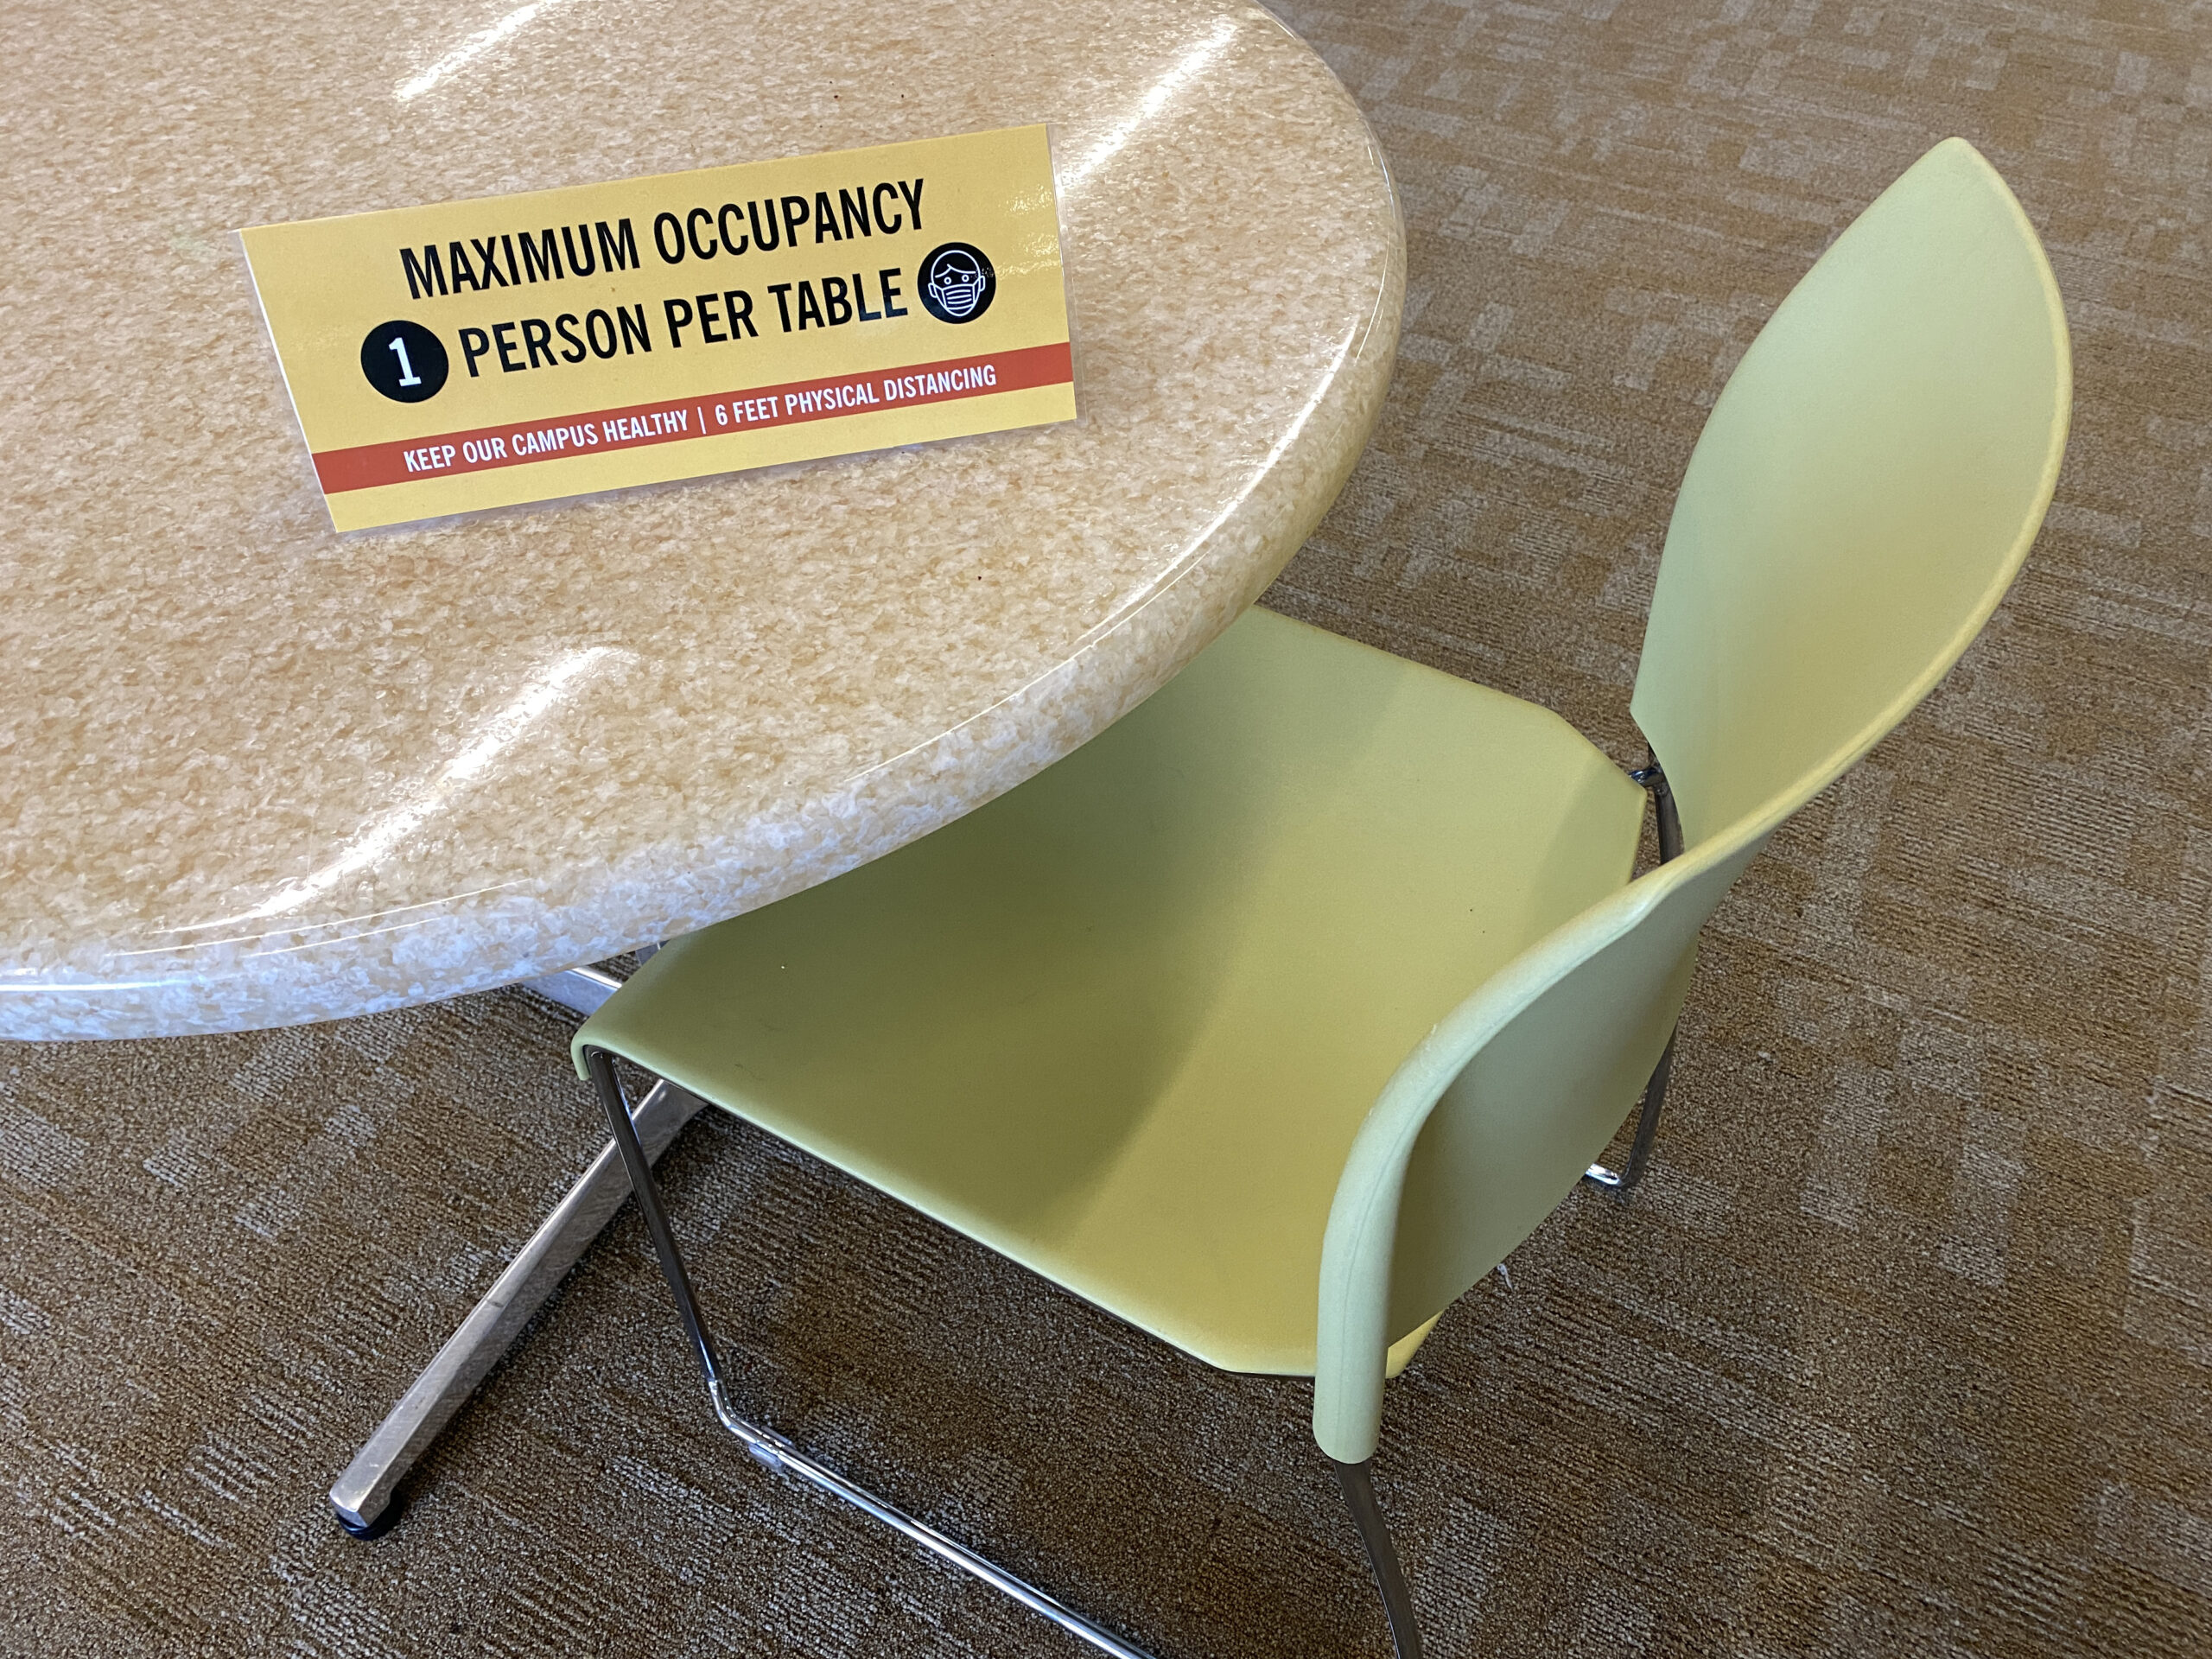 table with sign saying only one occupant per table